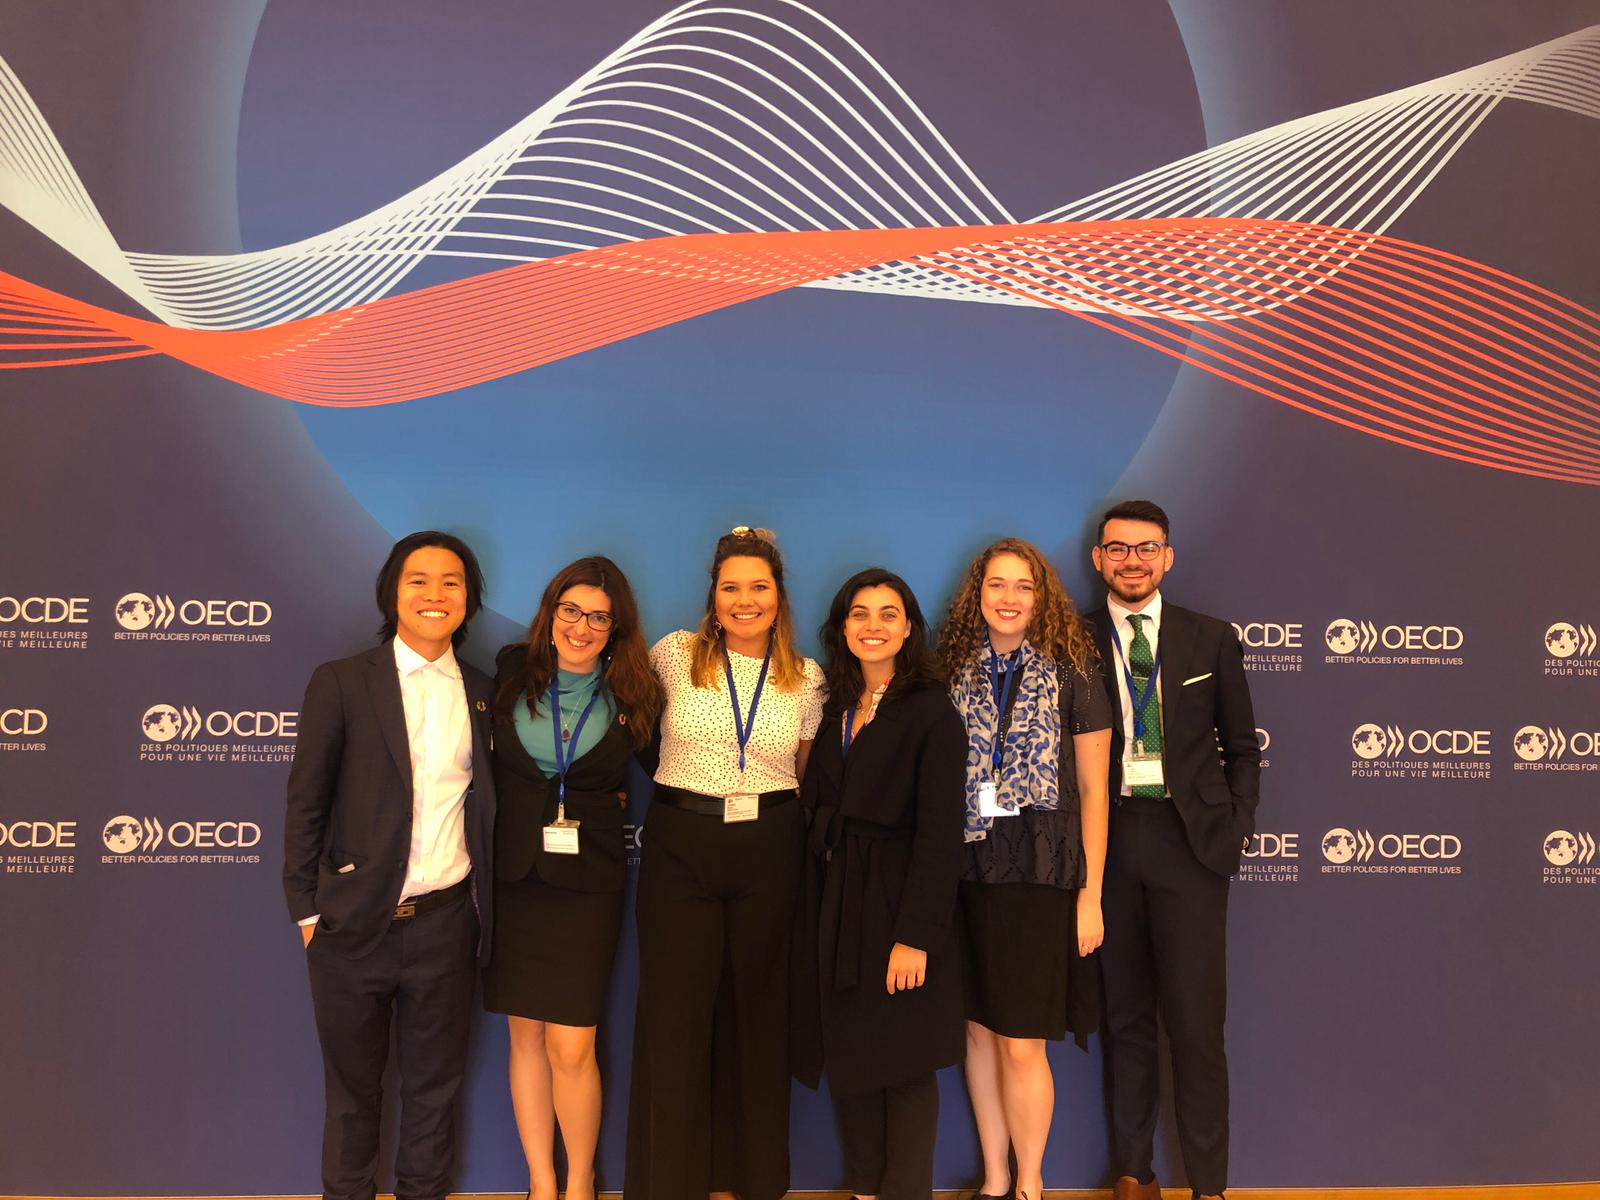 Global Voices Scholars at the 2019 oecd forum